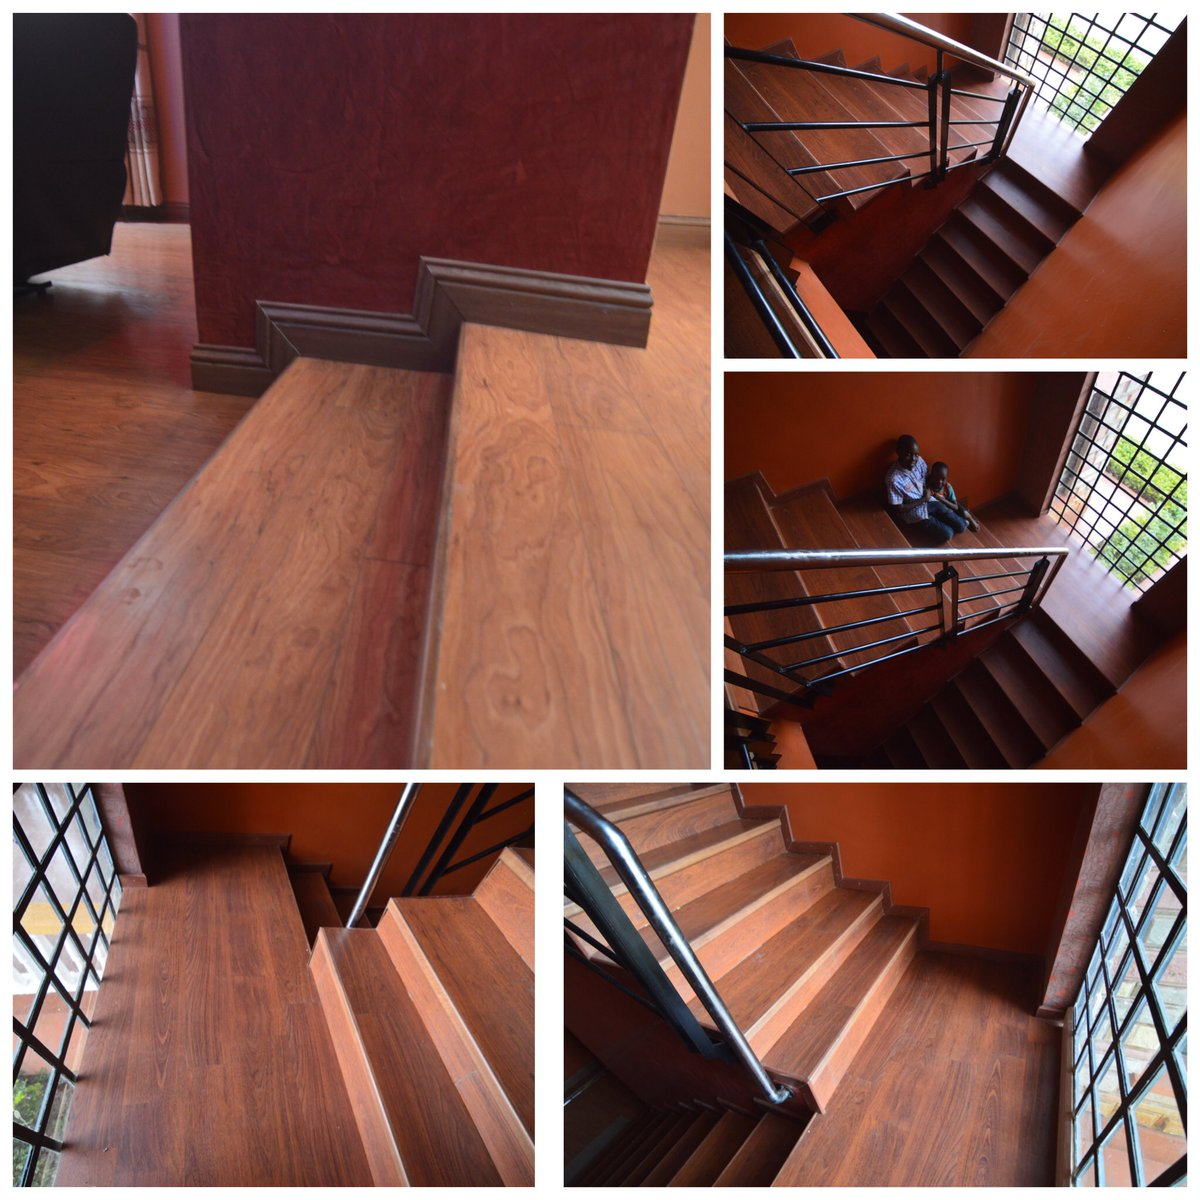 The Most Innovative Technology To Mould Stairs Case With Pergo Laminate Floors Call 0780955000pic Twitter Ogqbpvx58c